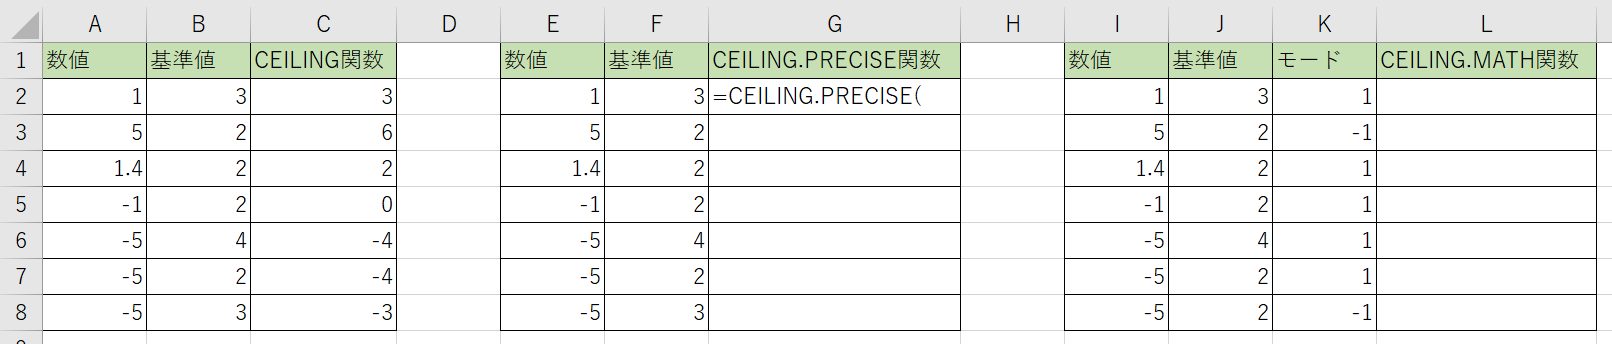 CEILINGPRECISE関数を書きました。